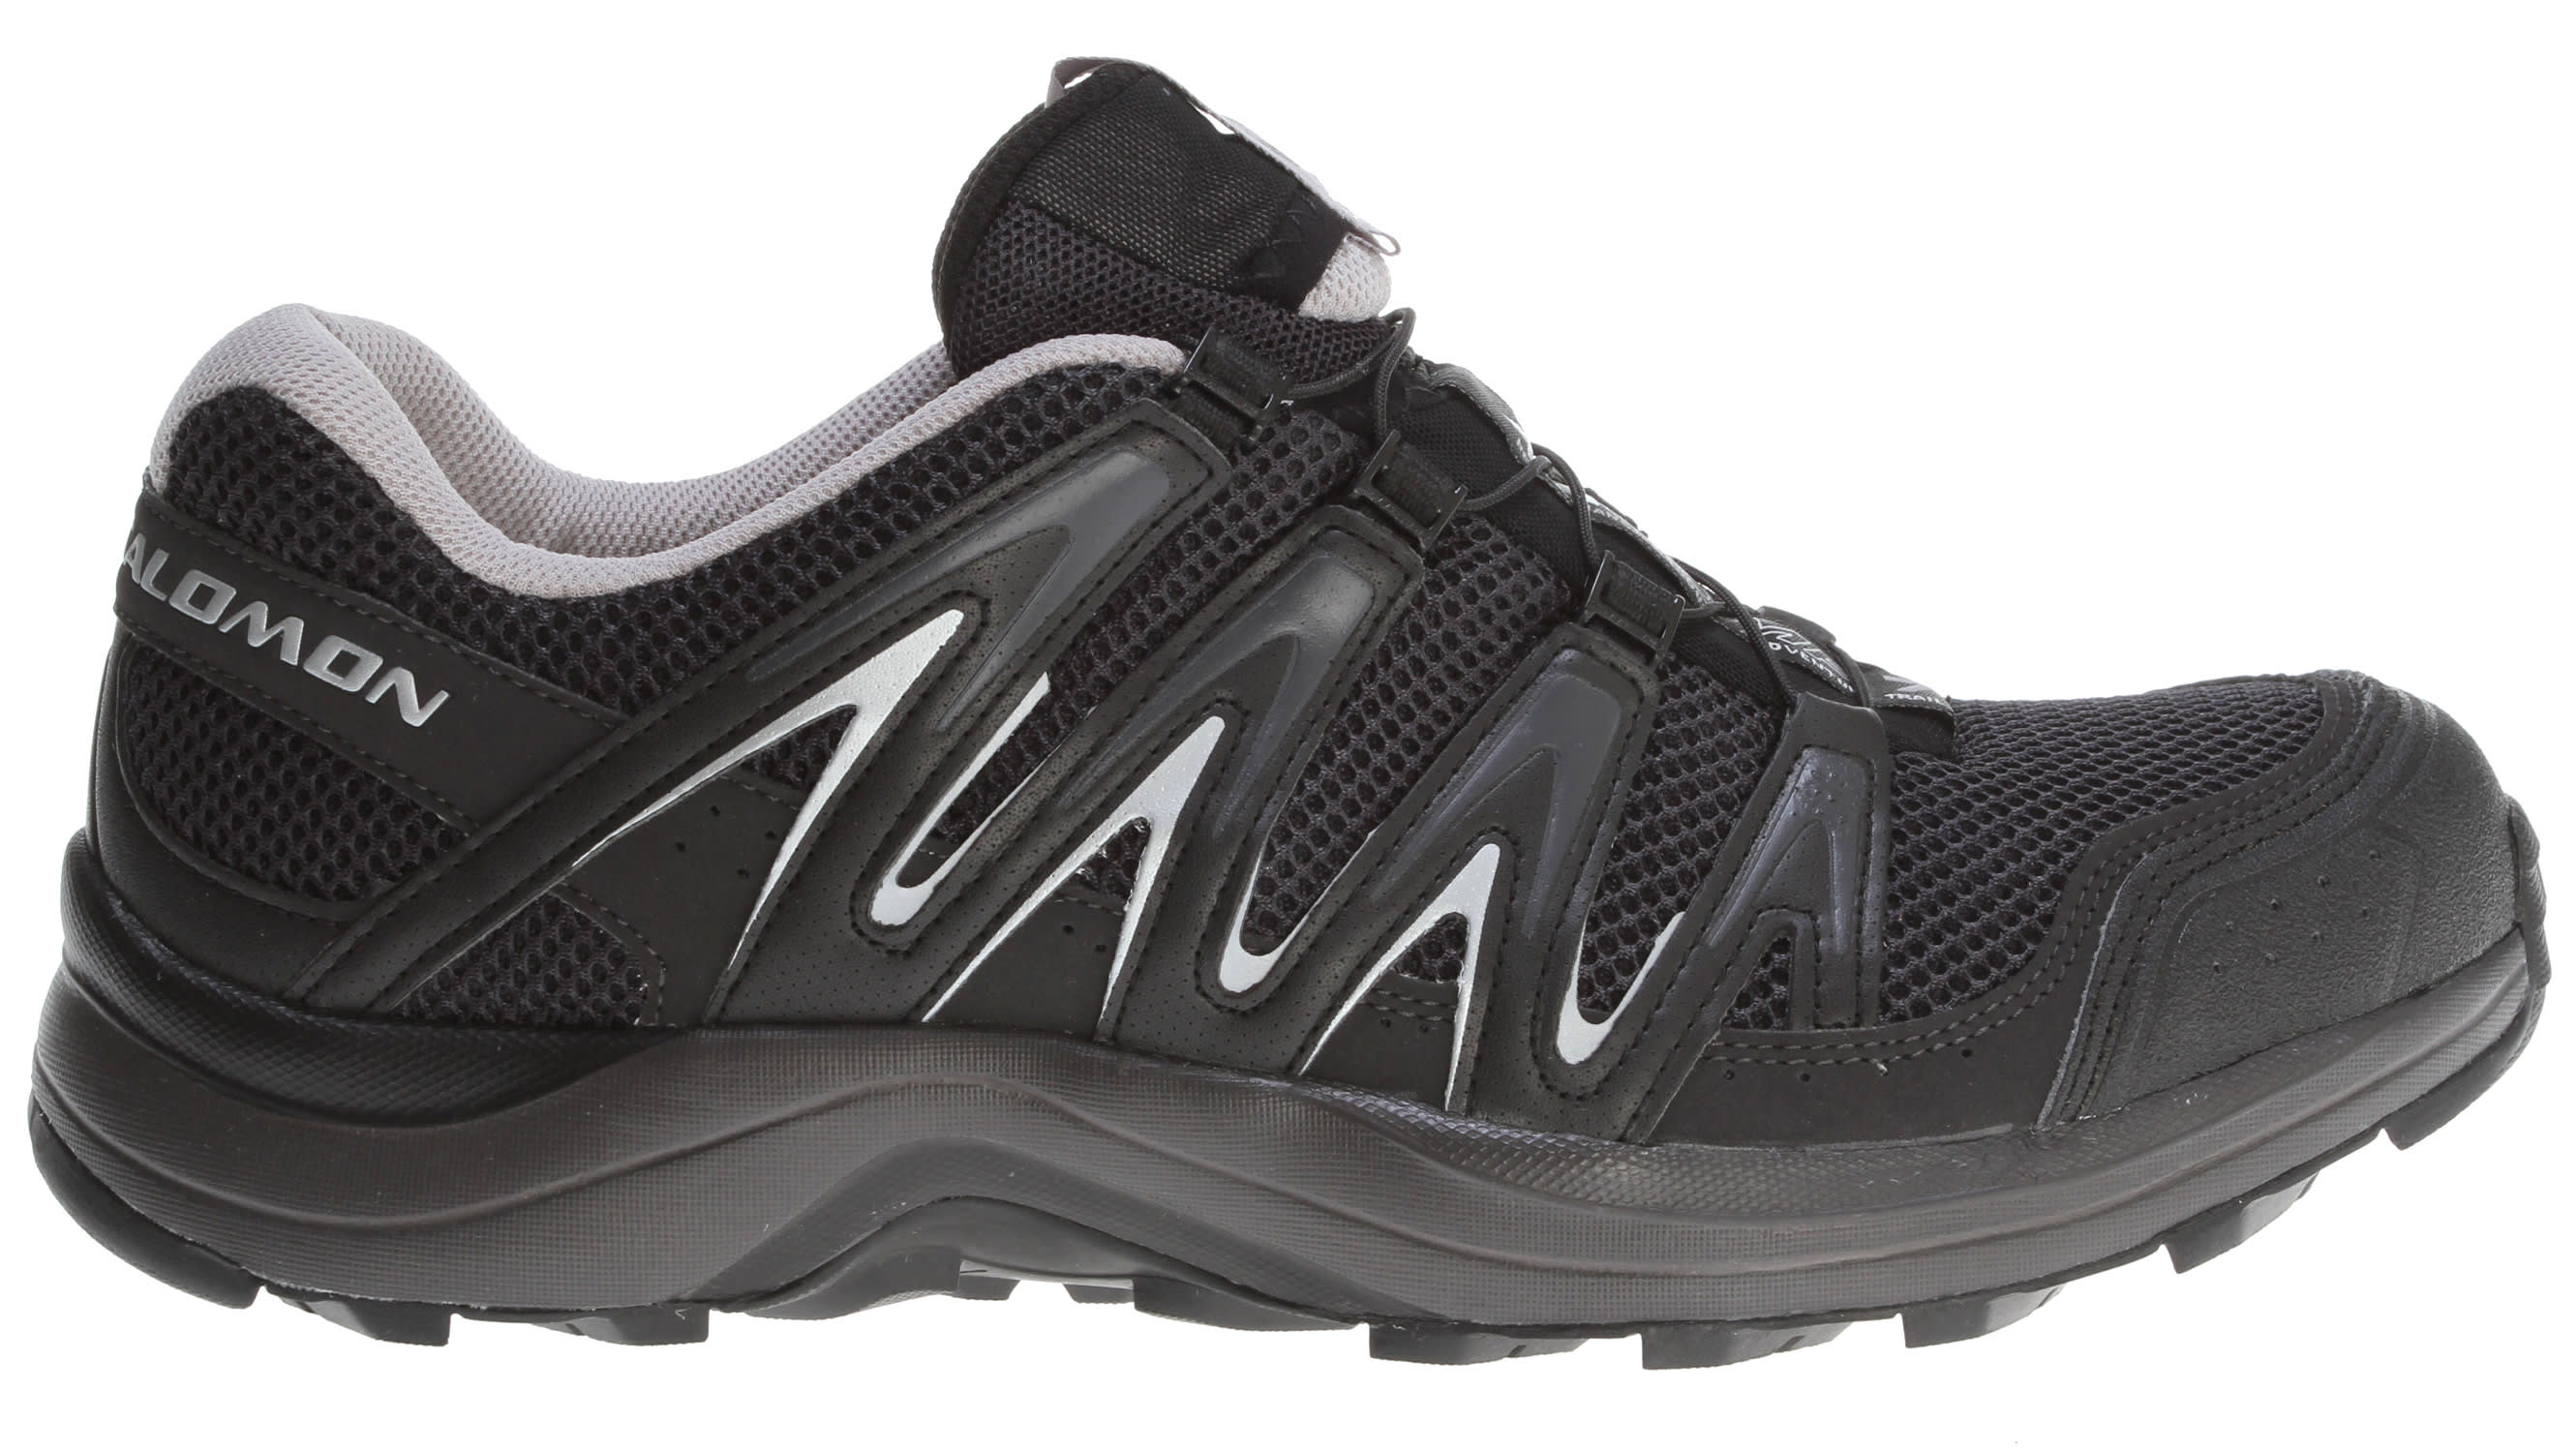 Shop for Salomon XA Comp 7 Hiking Shoes Asphalt/Black/Aluminum - Men's